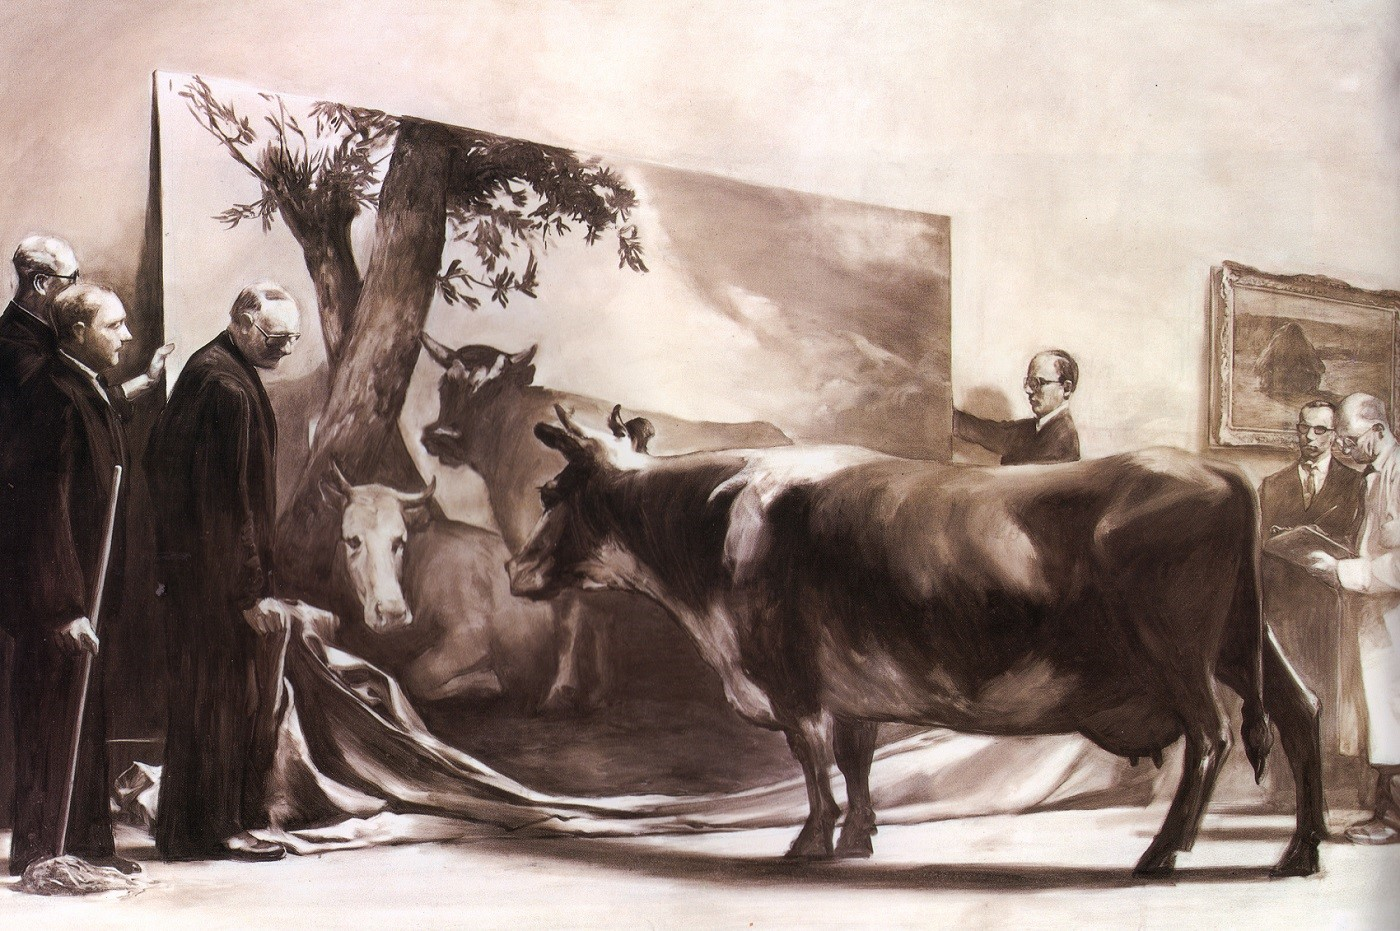 The painting, The Innocent Eye Test, by Mark Tansey which shows a cow being shown a painting of other cows by a group of men